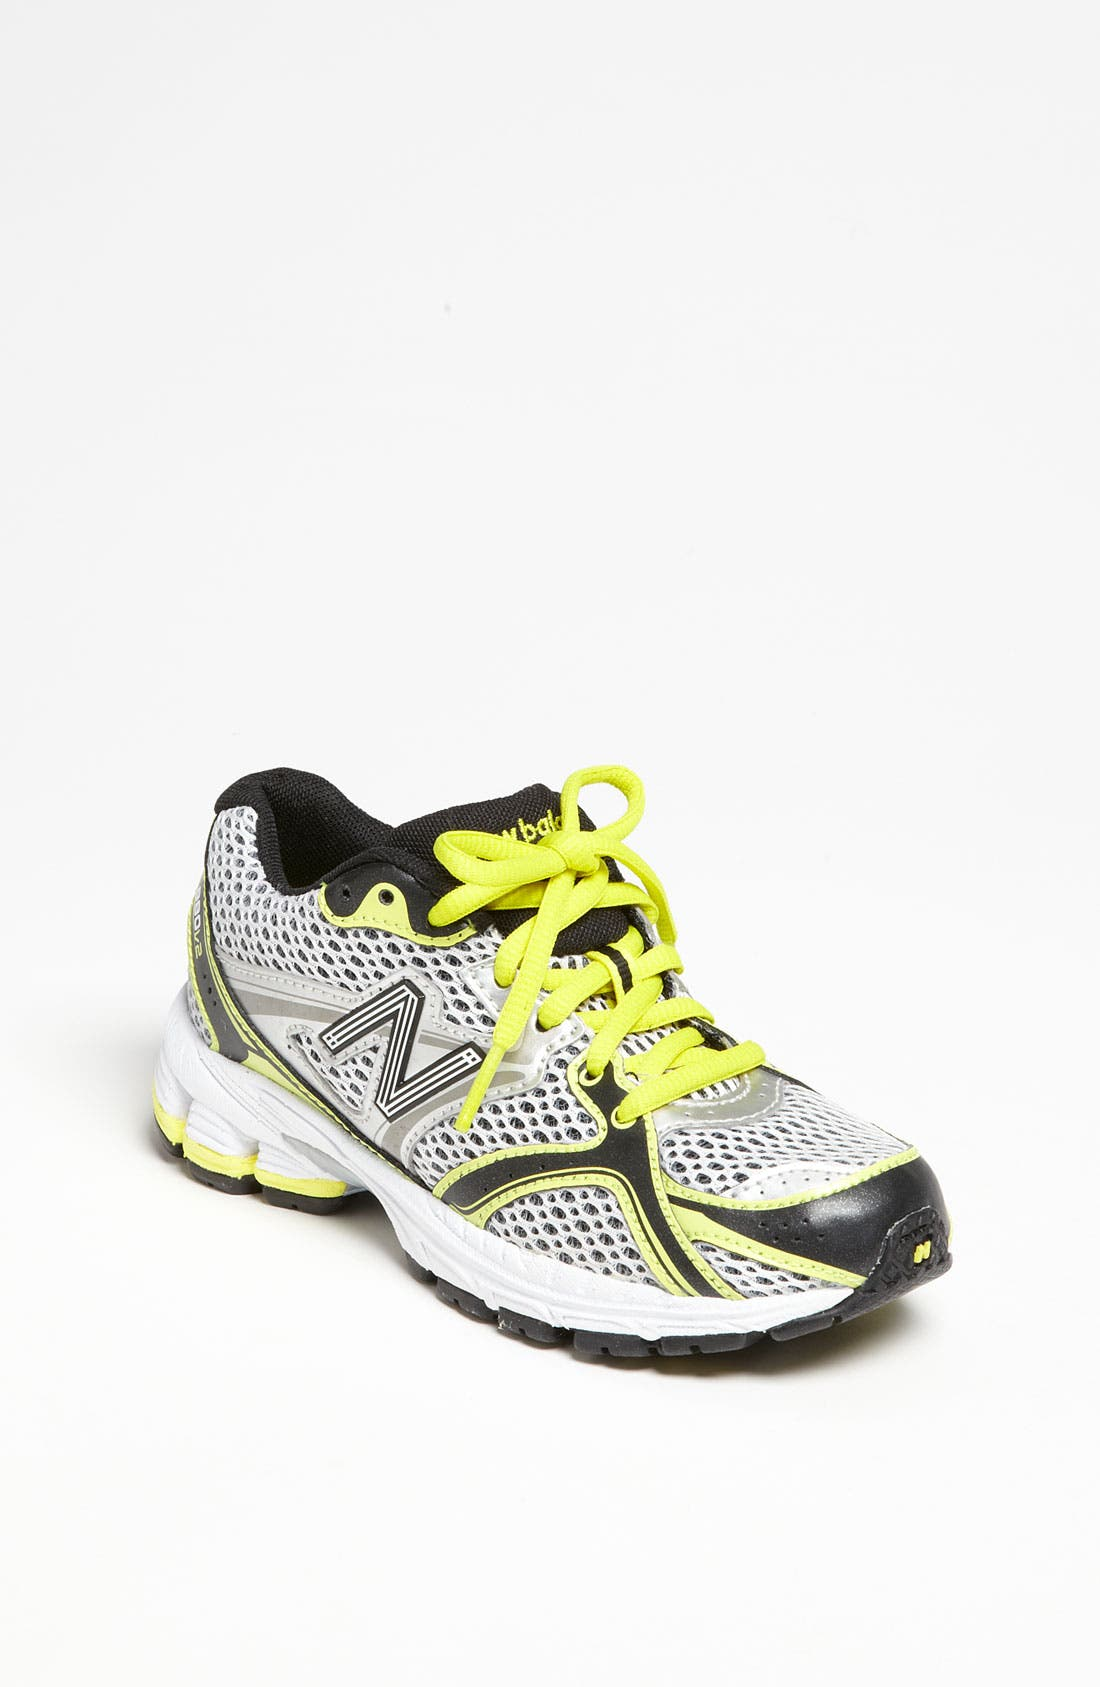 Main Image - New Balance 'Take Down 880' Running Shoe (Toddler, Little Kid & Big Kid)